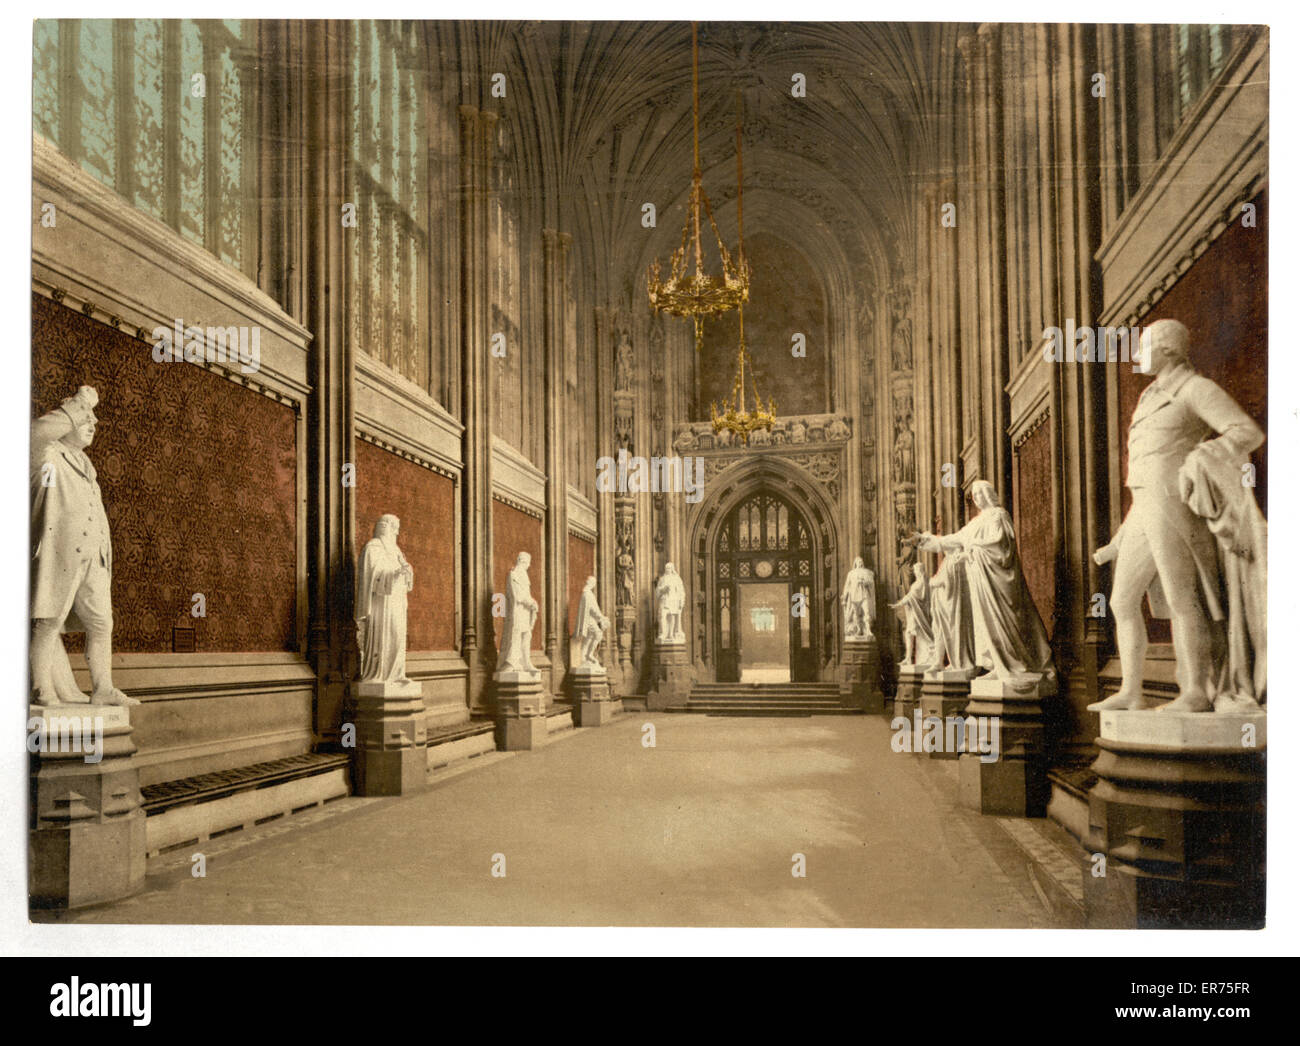 Merveilleux Houses Of Parliament, St. Stephenu0027s Hall (Interior), London, England. Date  Between Ca. 1890 And Ca. 1900.